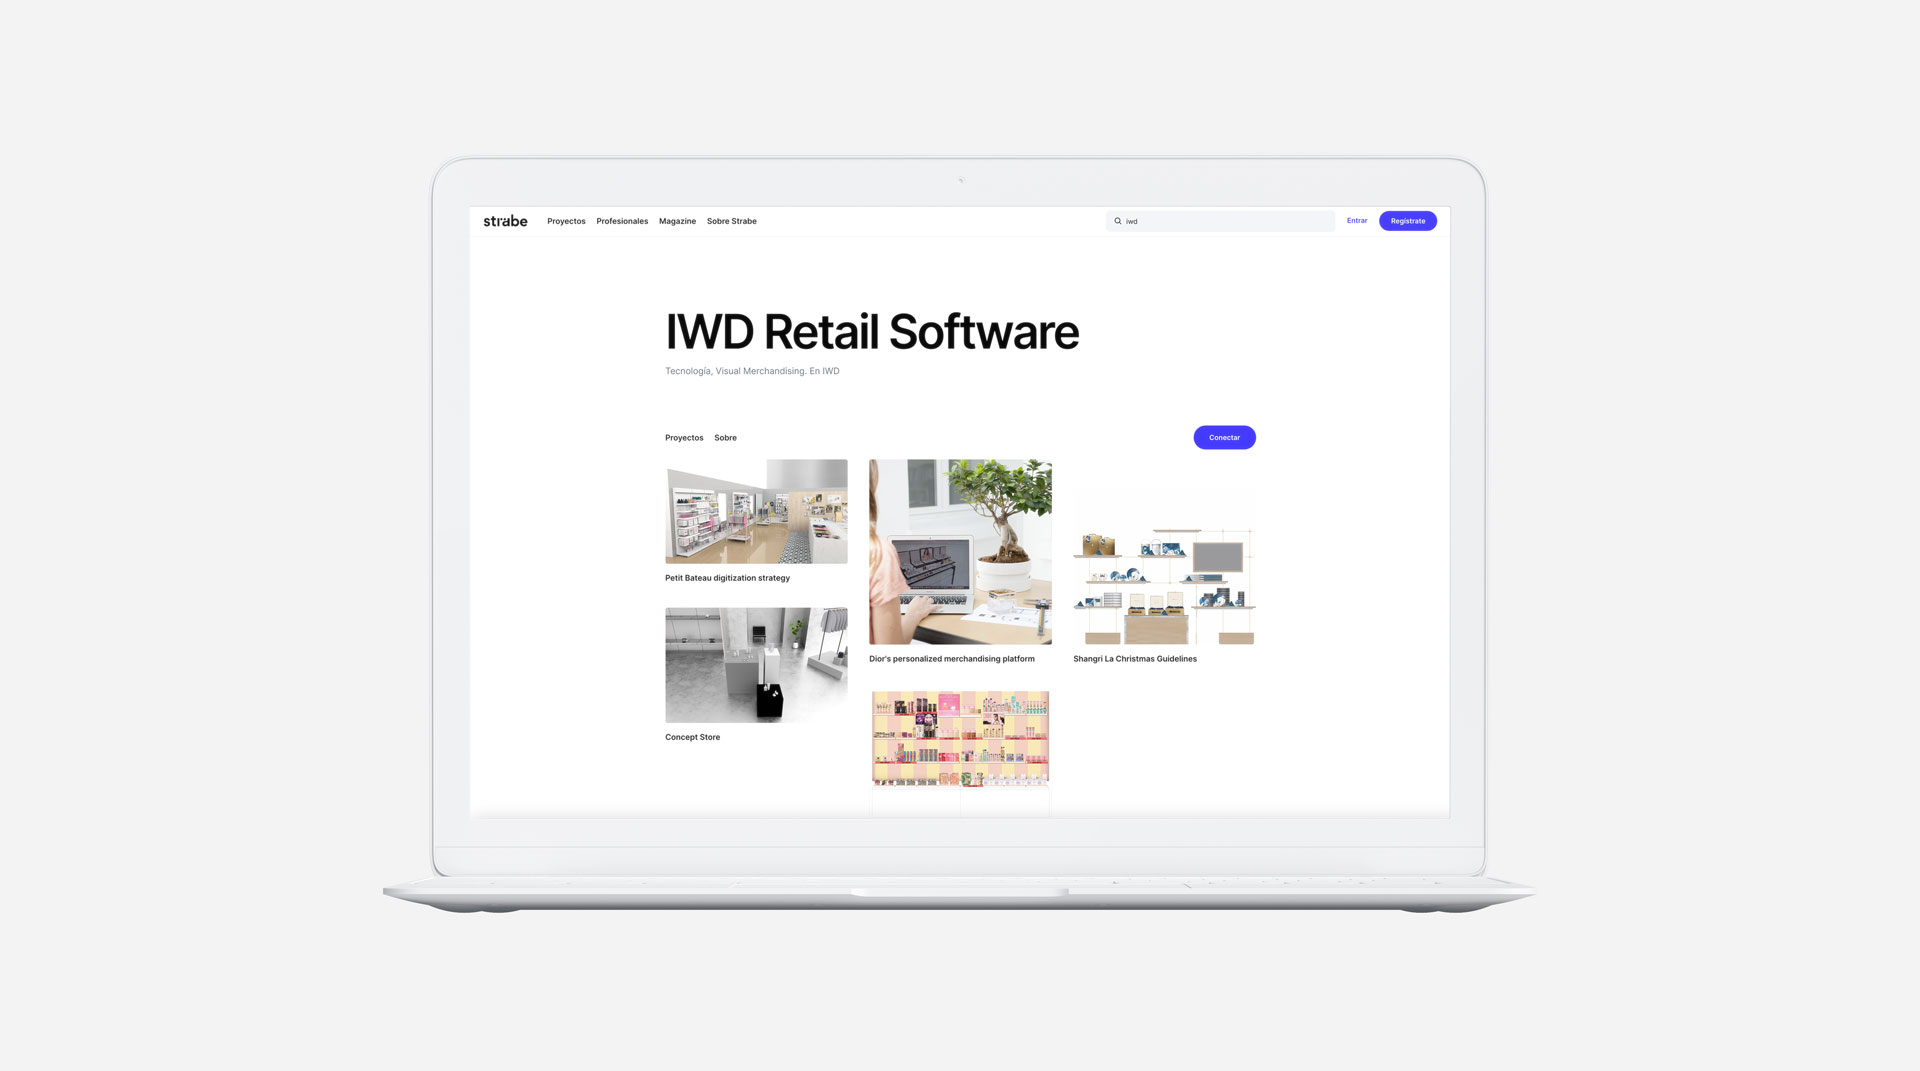 IWD provides great user-friendly retail software that empower brands to achieve consistency and successful merchandising strategies